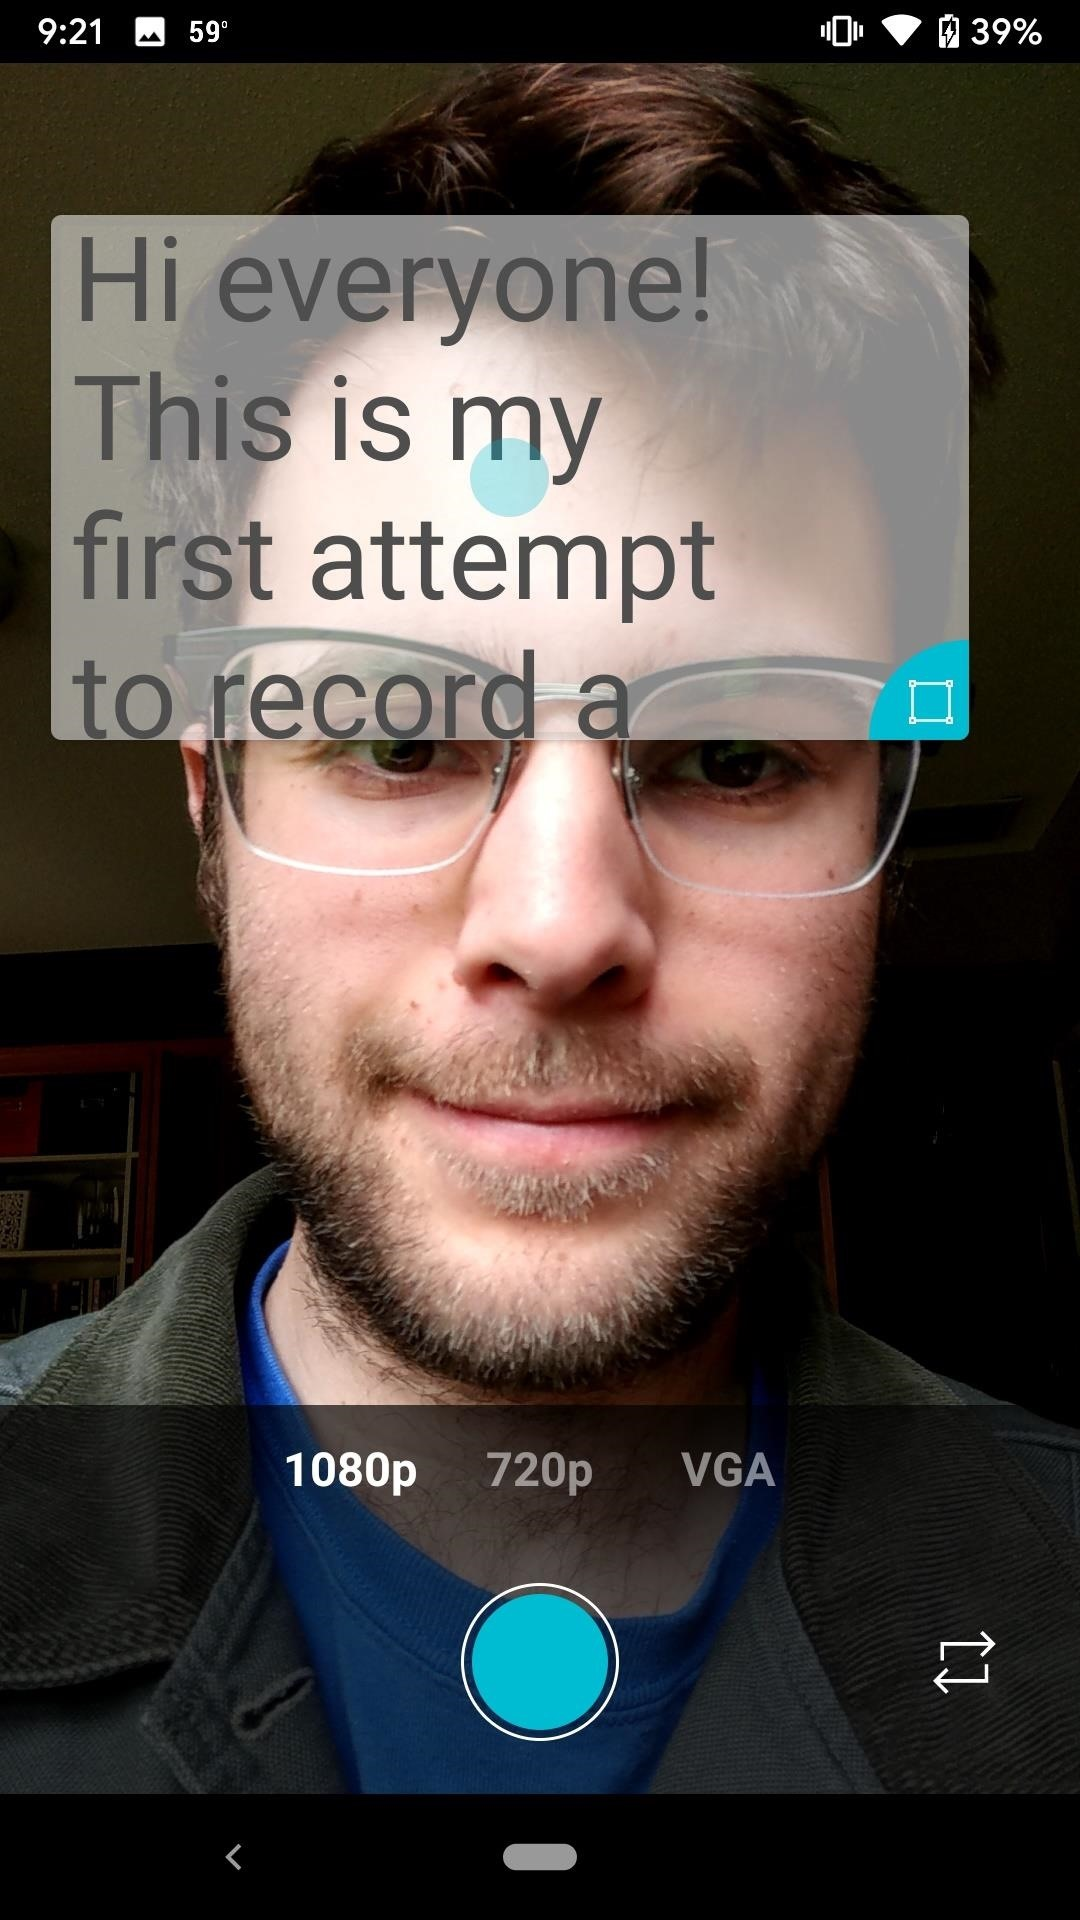 dce5cffafd133 Turn Your Phone into a Teleprompter to Record Selfie Videos Without ...